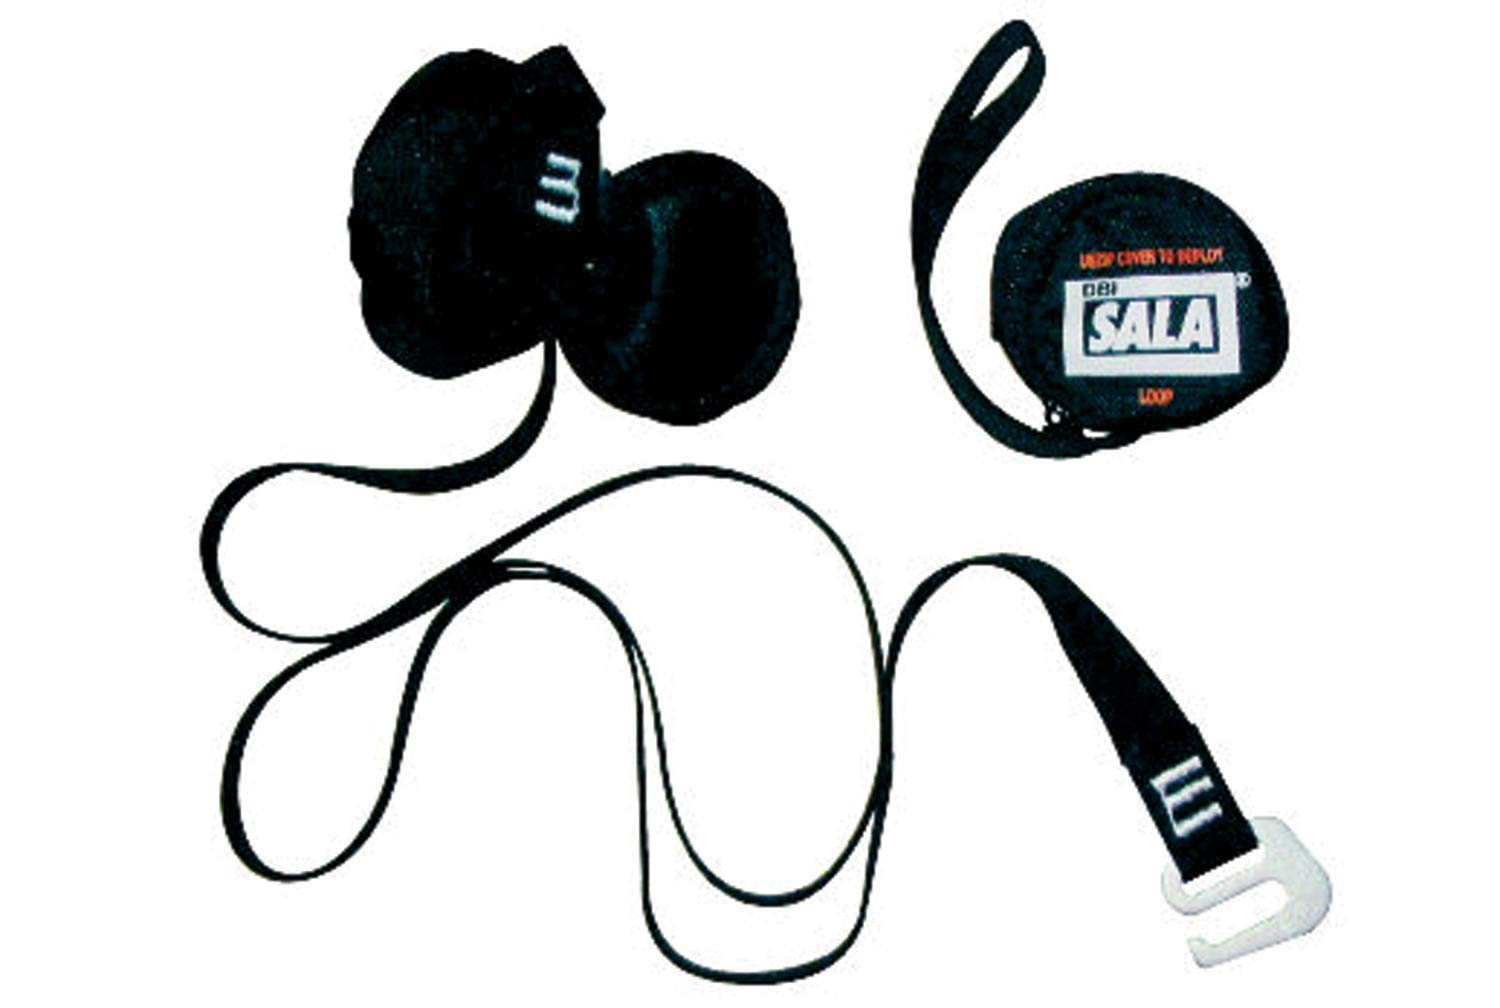 3M DBI-SALA 9501403 Fall Protection Full Body Harness Accessory, Suspension Trauma Safety Straps, Black by 3M Personal Protective Equipment